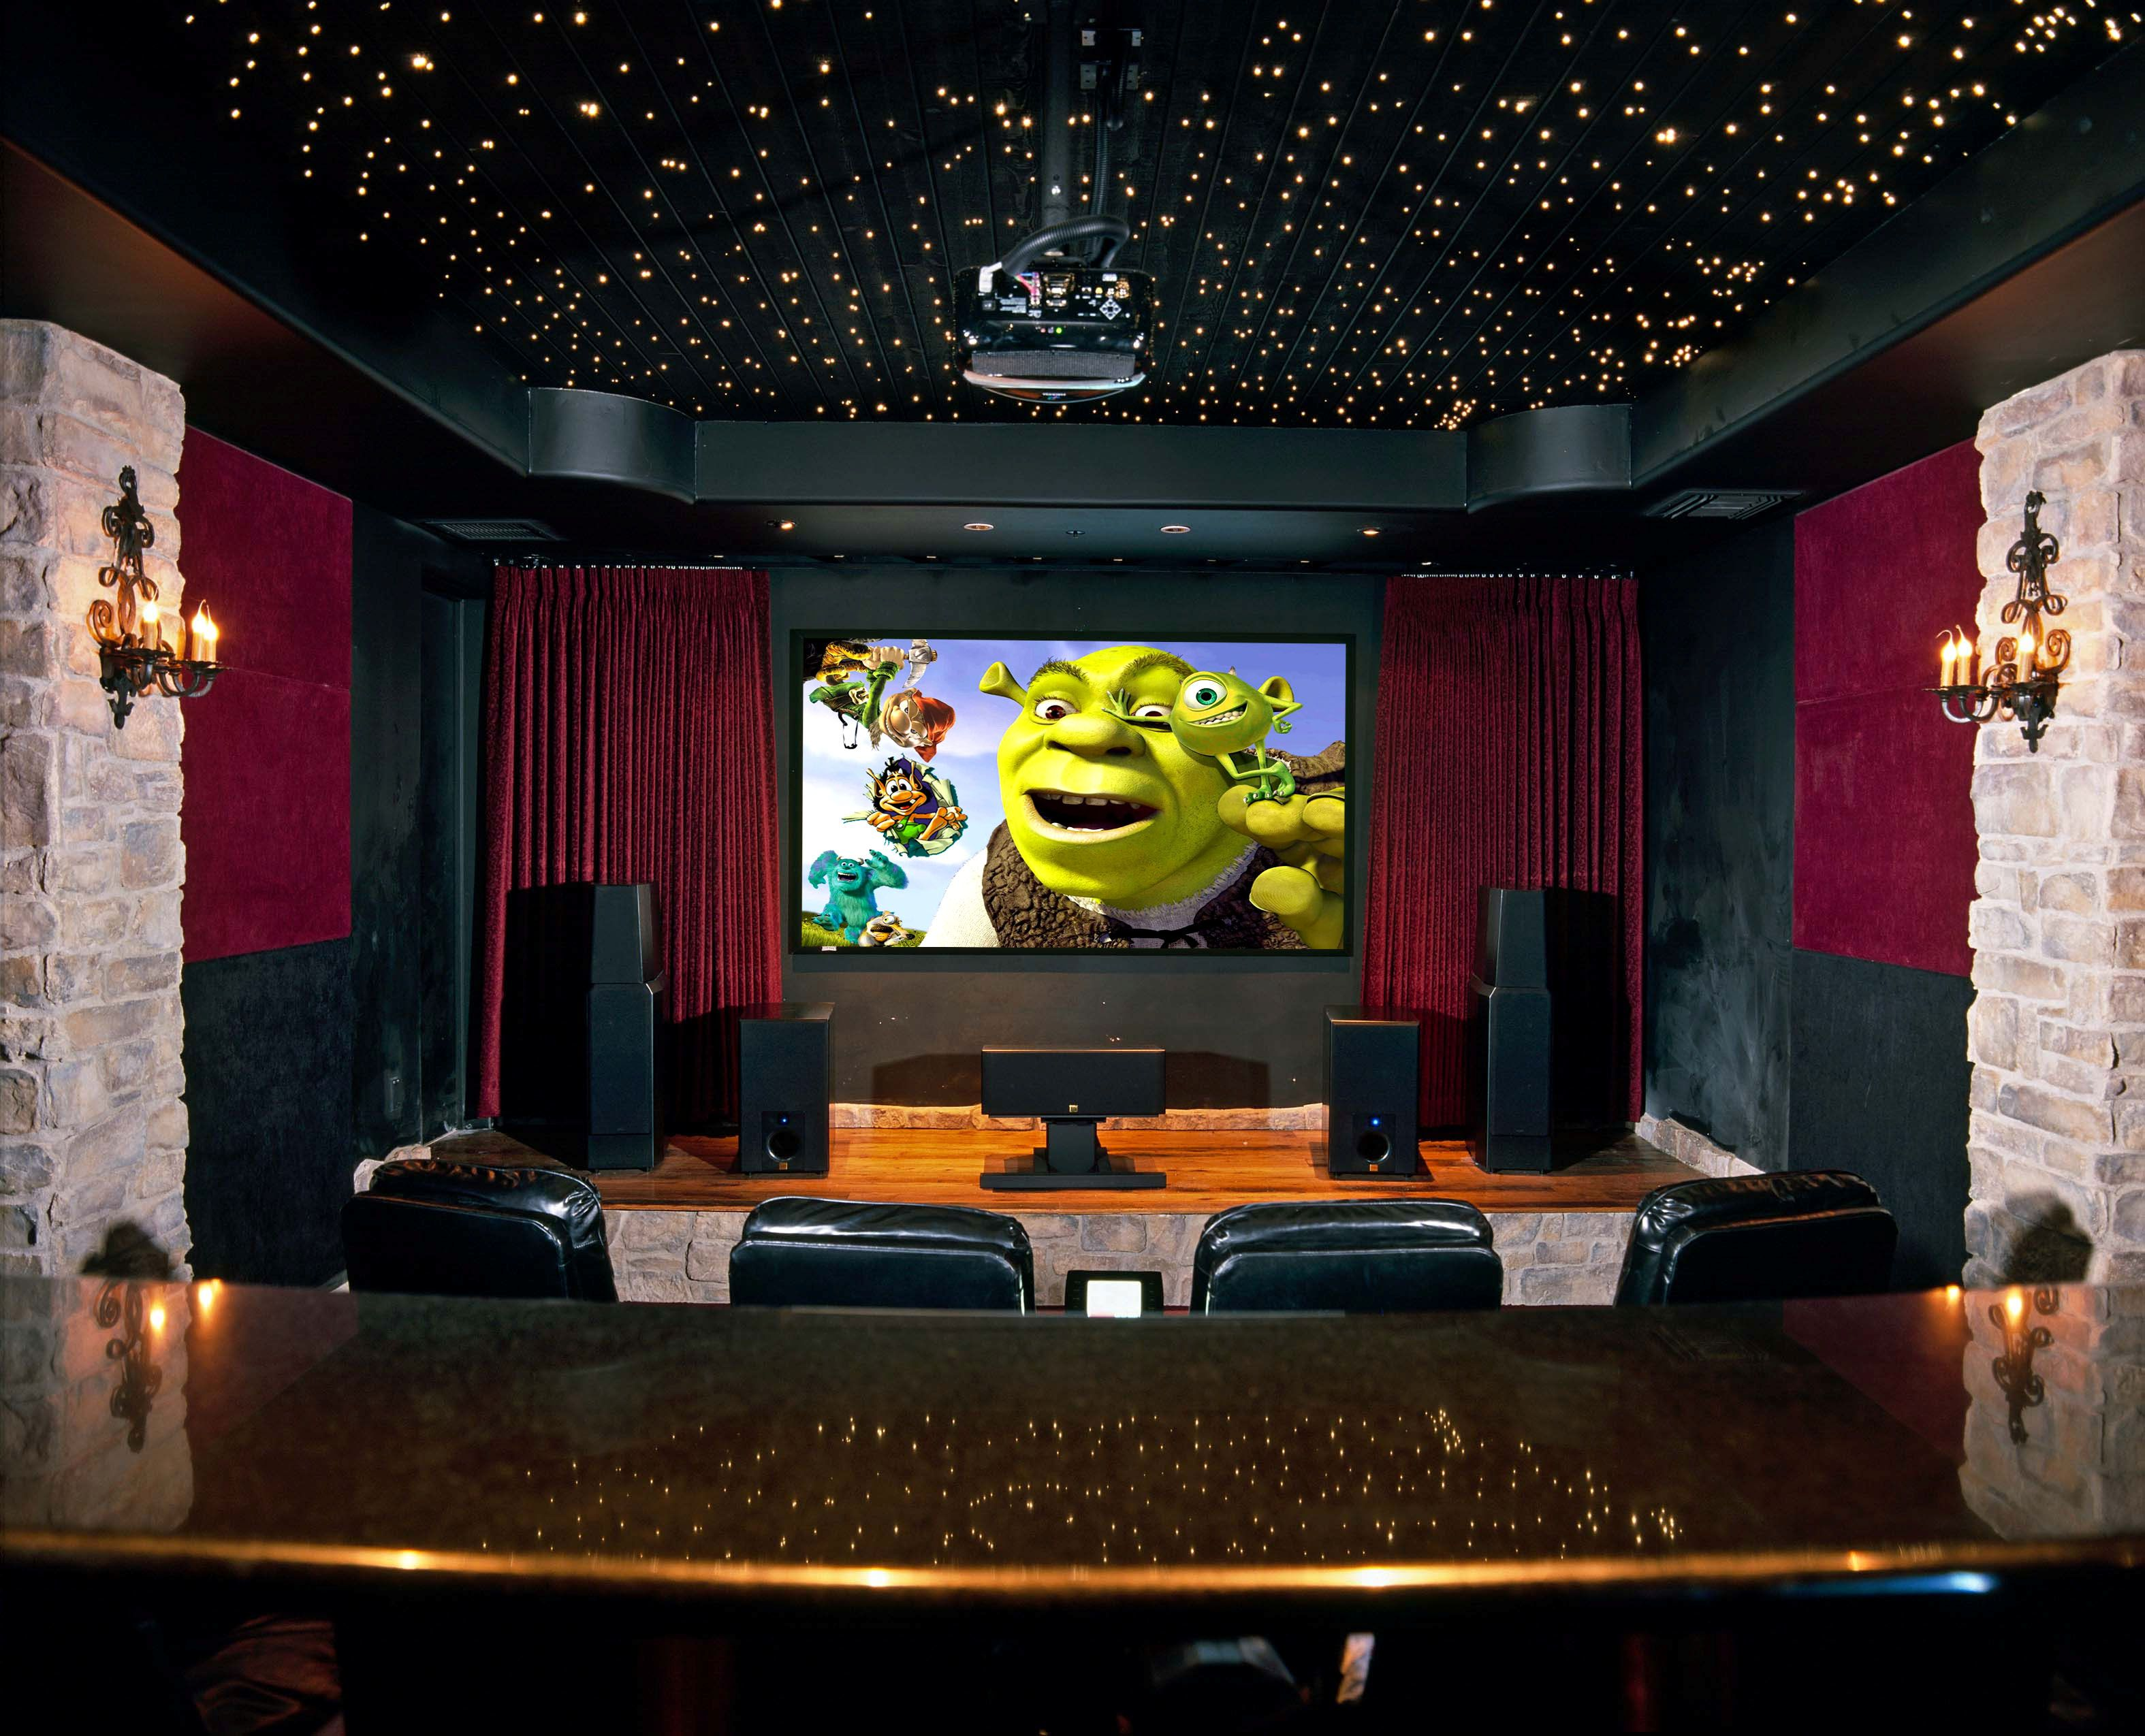 Home Theater Rooms Design Ideas popcorn check annoying crowds history Decorating Beautiful Home Theater Room With Ceiling Design Full Of Stars And Black Leather Seats Ideas